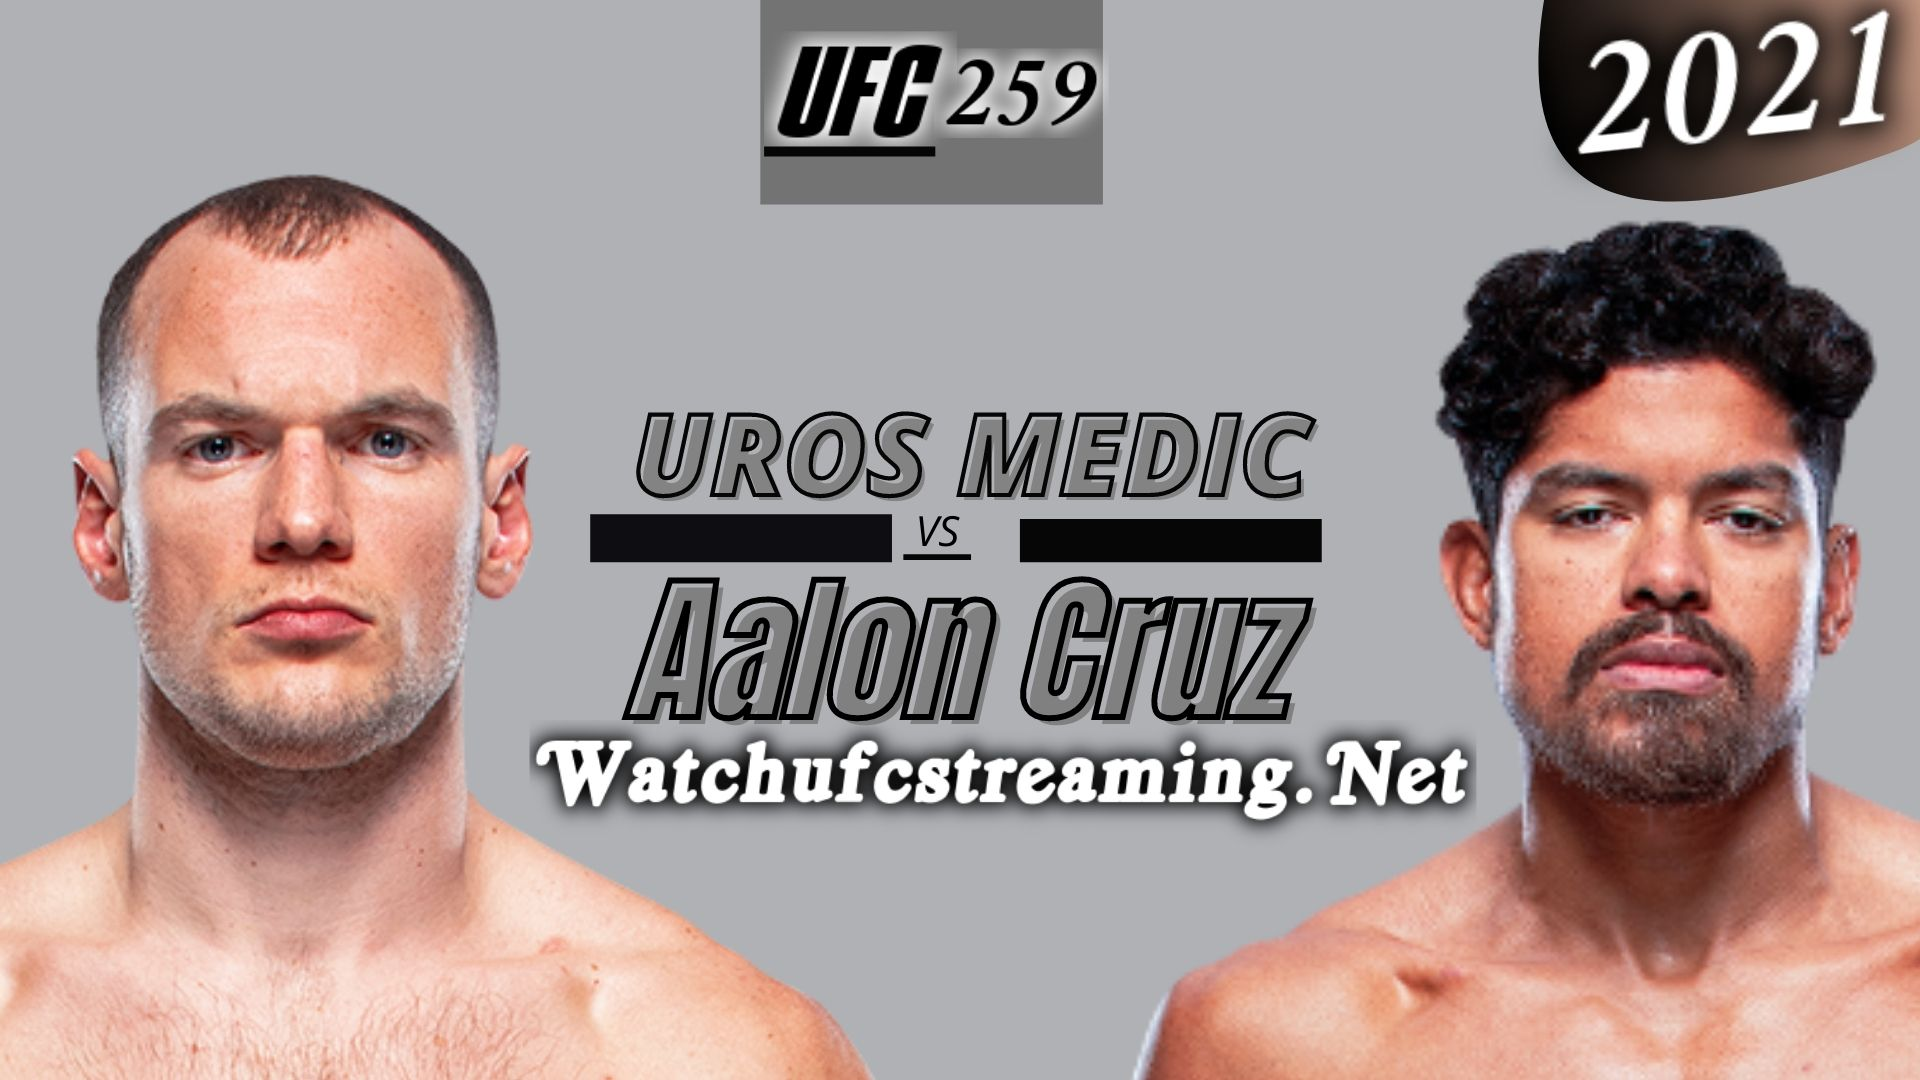 UFC 259: Uros Medic Vs Aalon Cruz Highlights 2021 | Lightweight